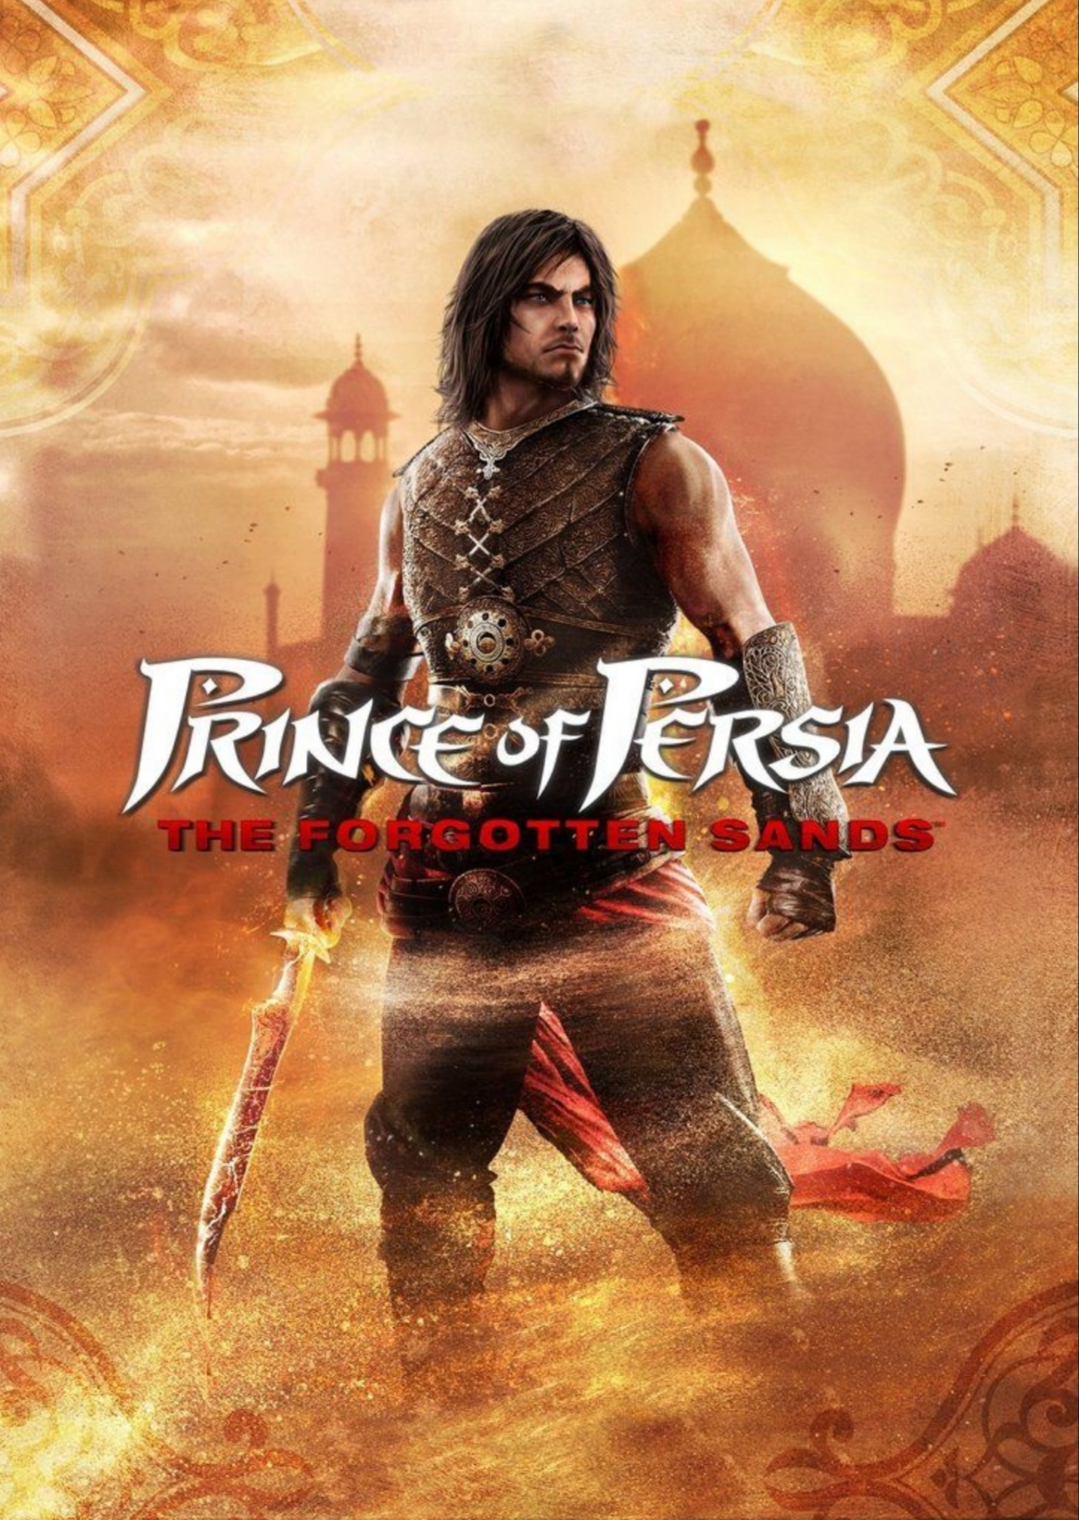 Prince of Persia: The Forgotten Sands (Video Game 2010) - IMDb